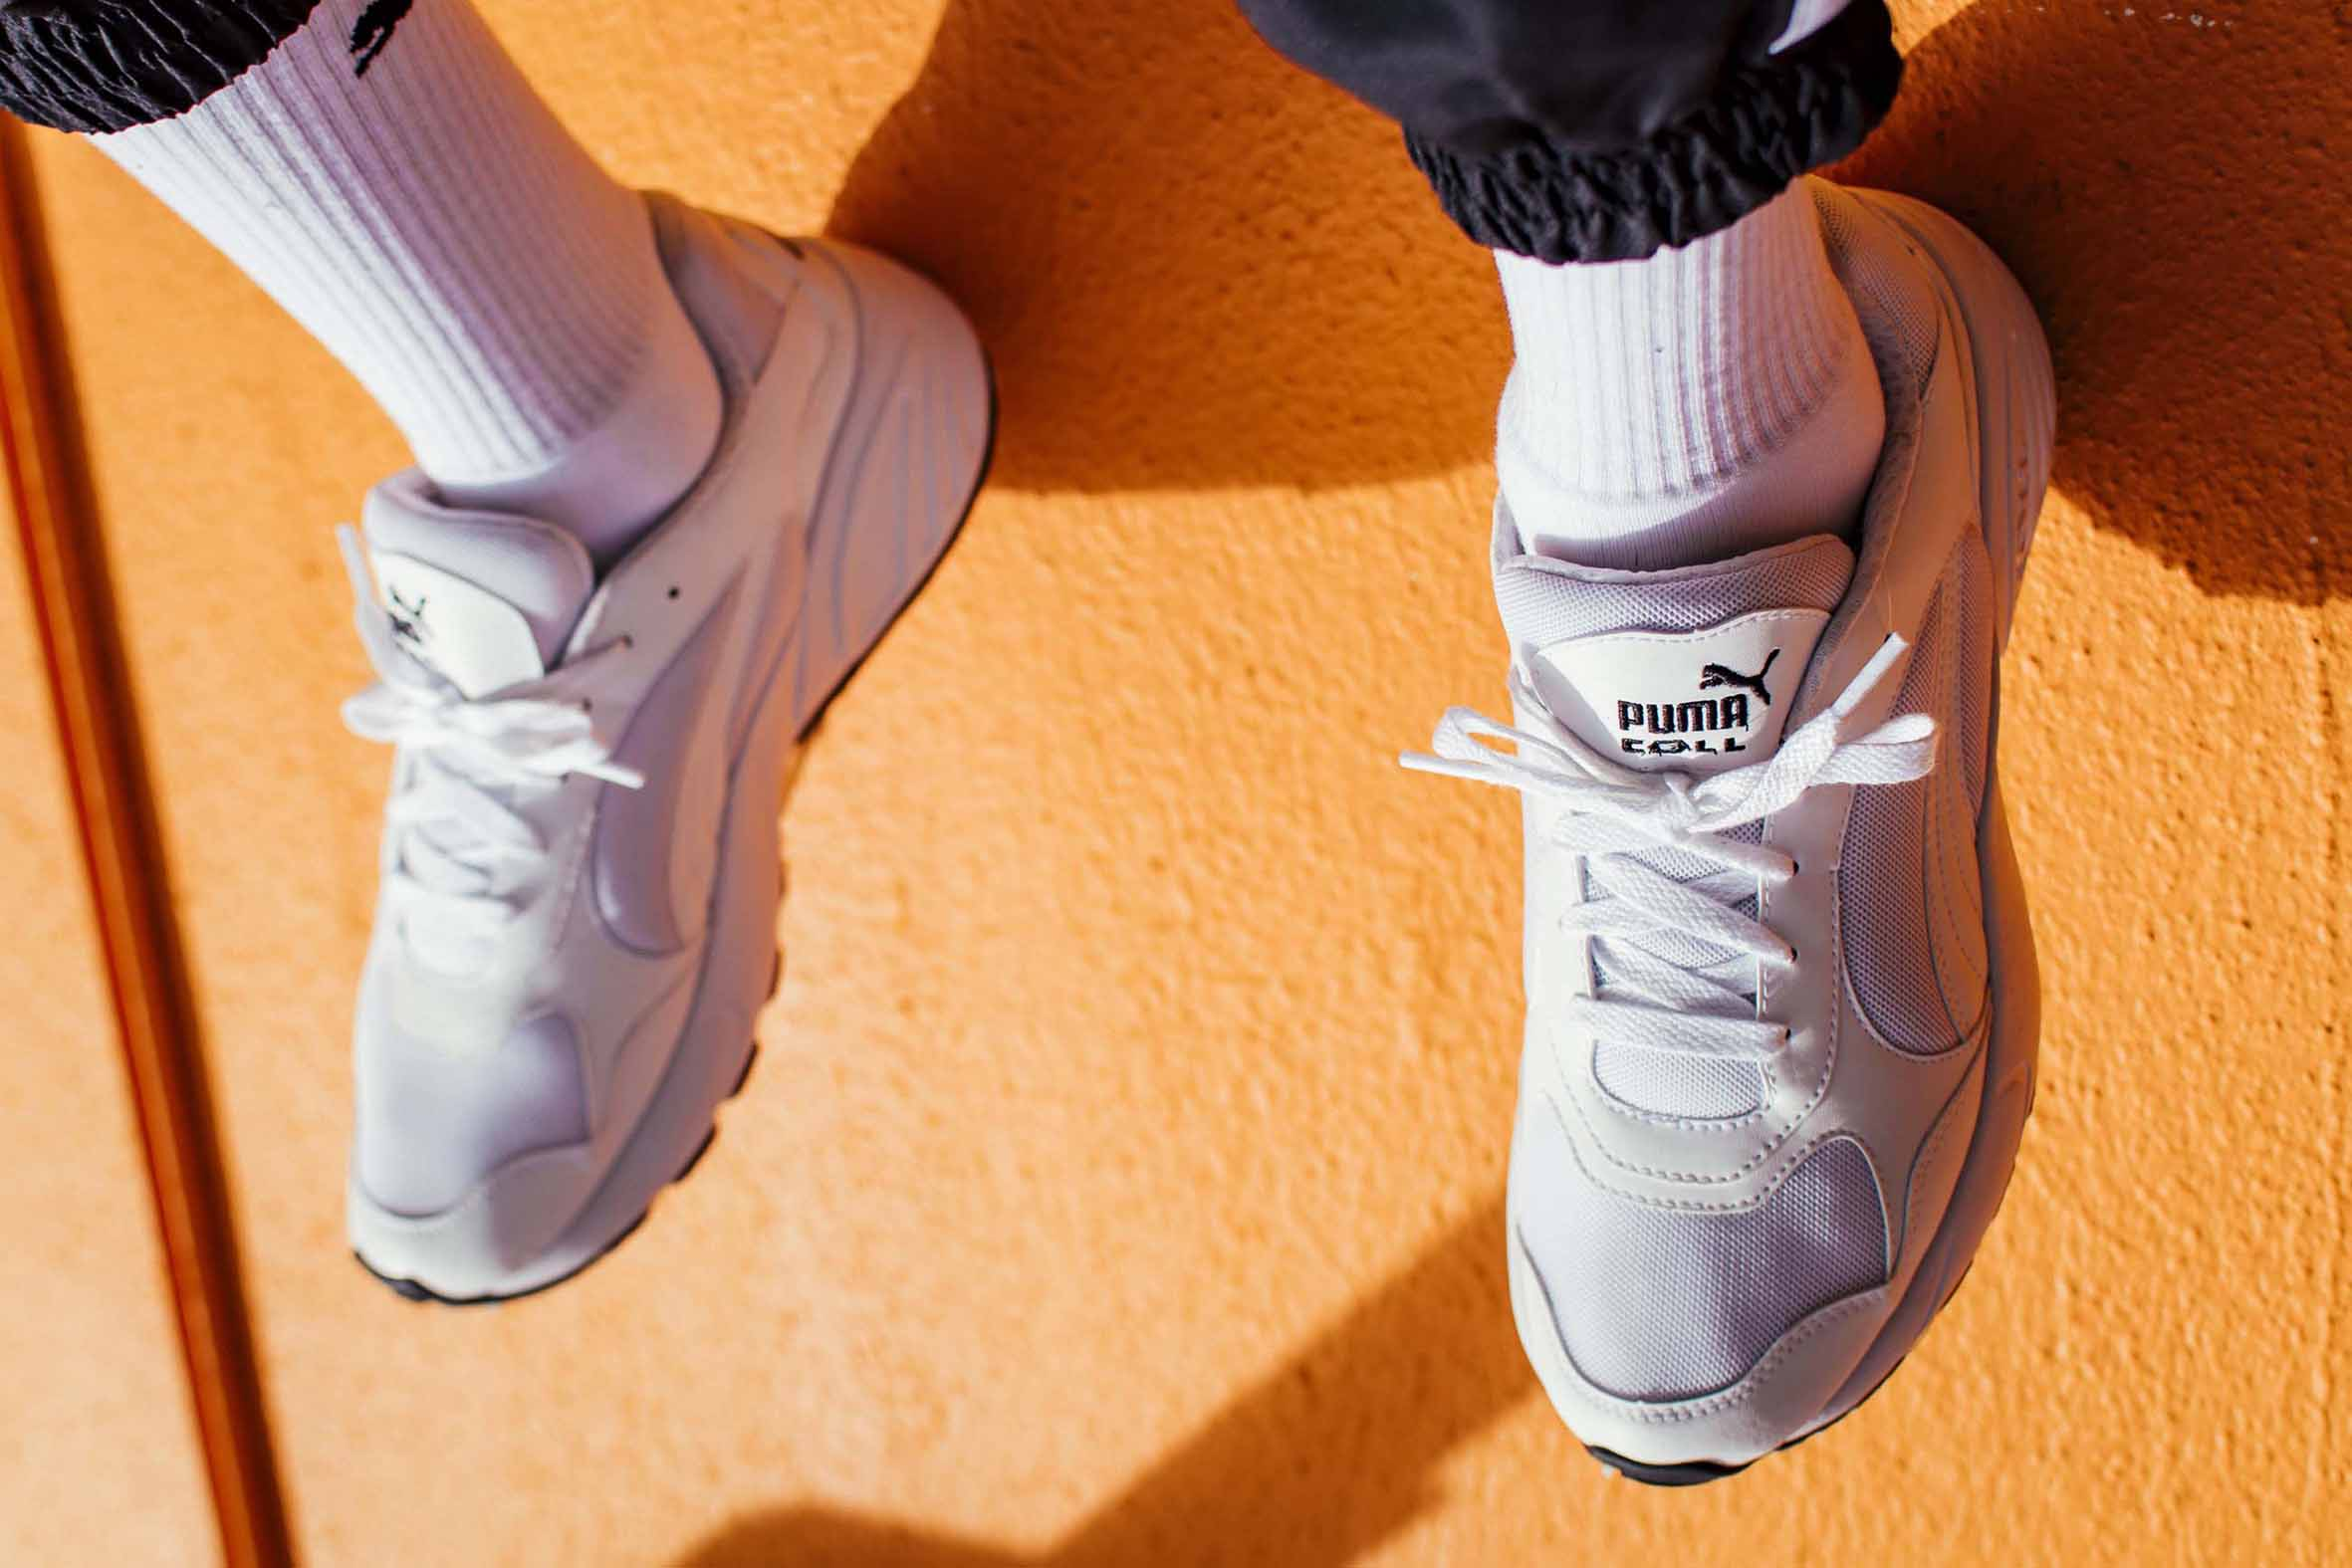 youngstacpt YoungstaCPT Wears Latest PUMA CELL Viper In White-On-White PUMA CELL Viper drop 2 pair lo